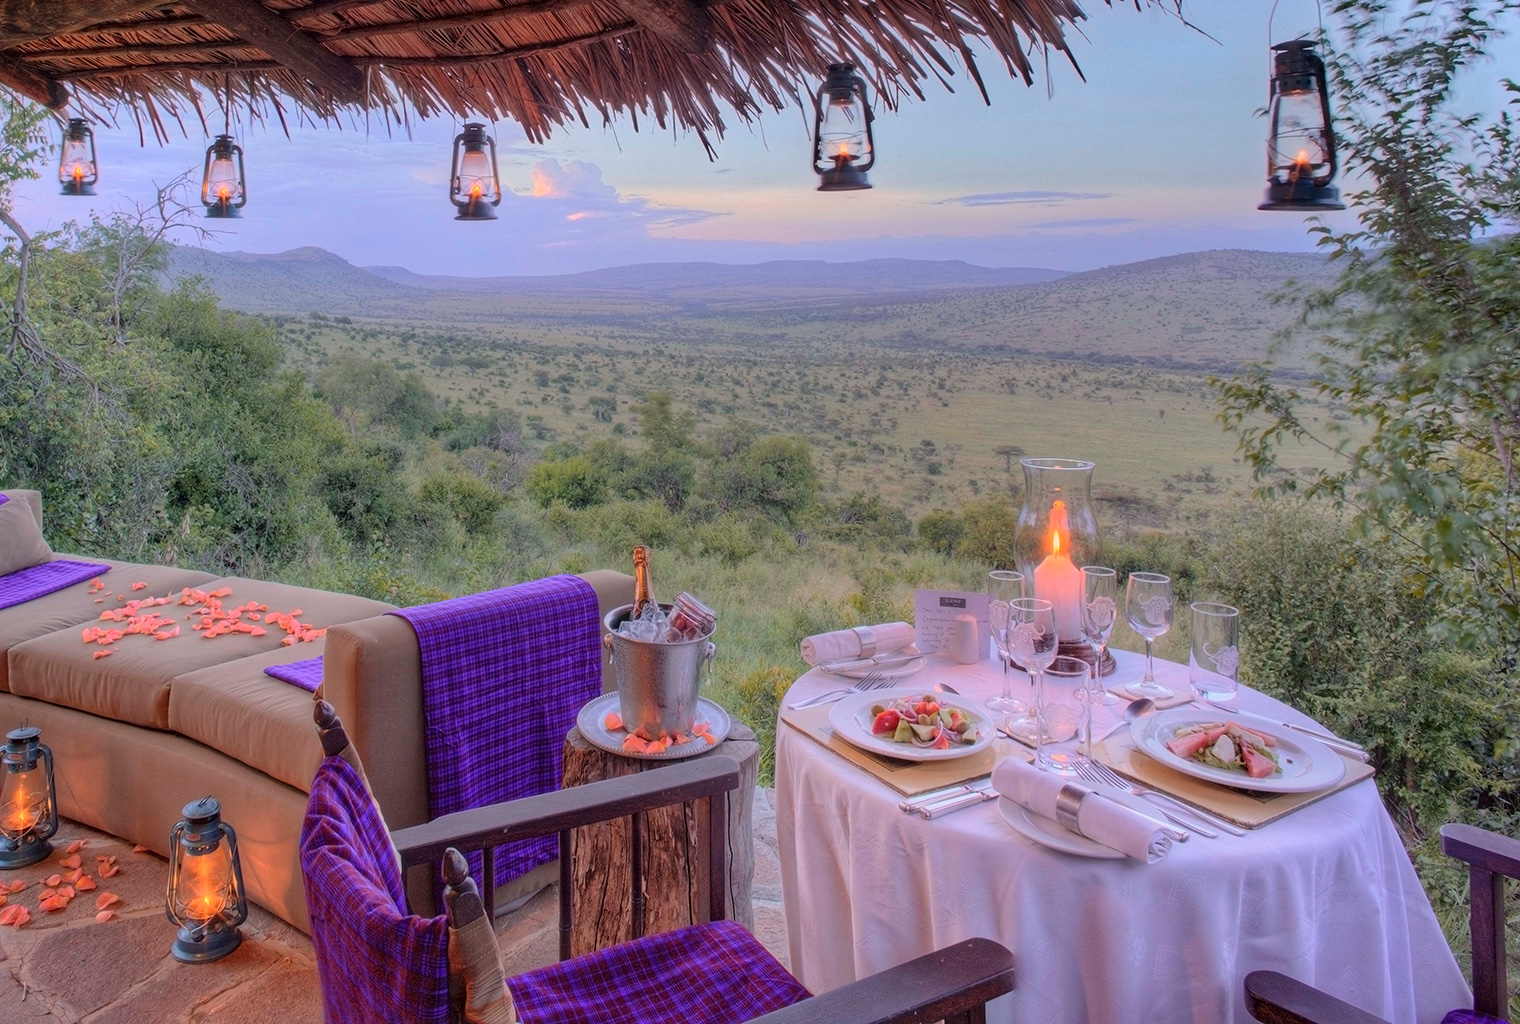 Kleins-Camp-Tanzania-Balcony-View